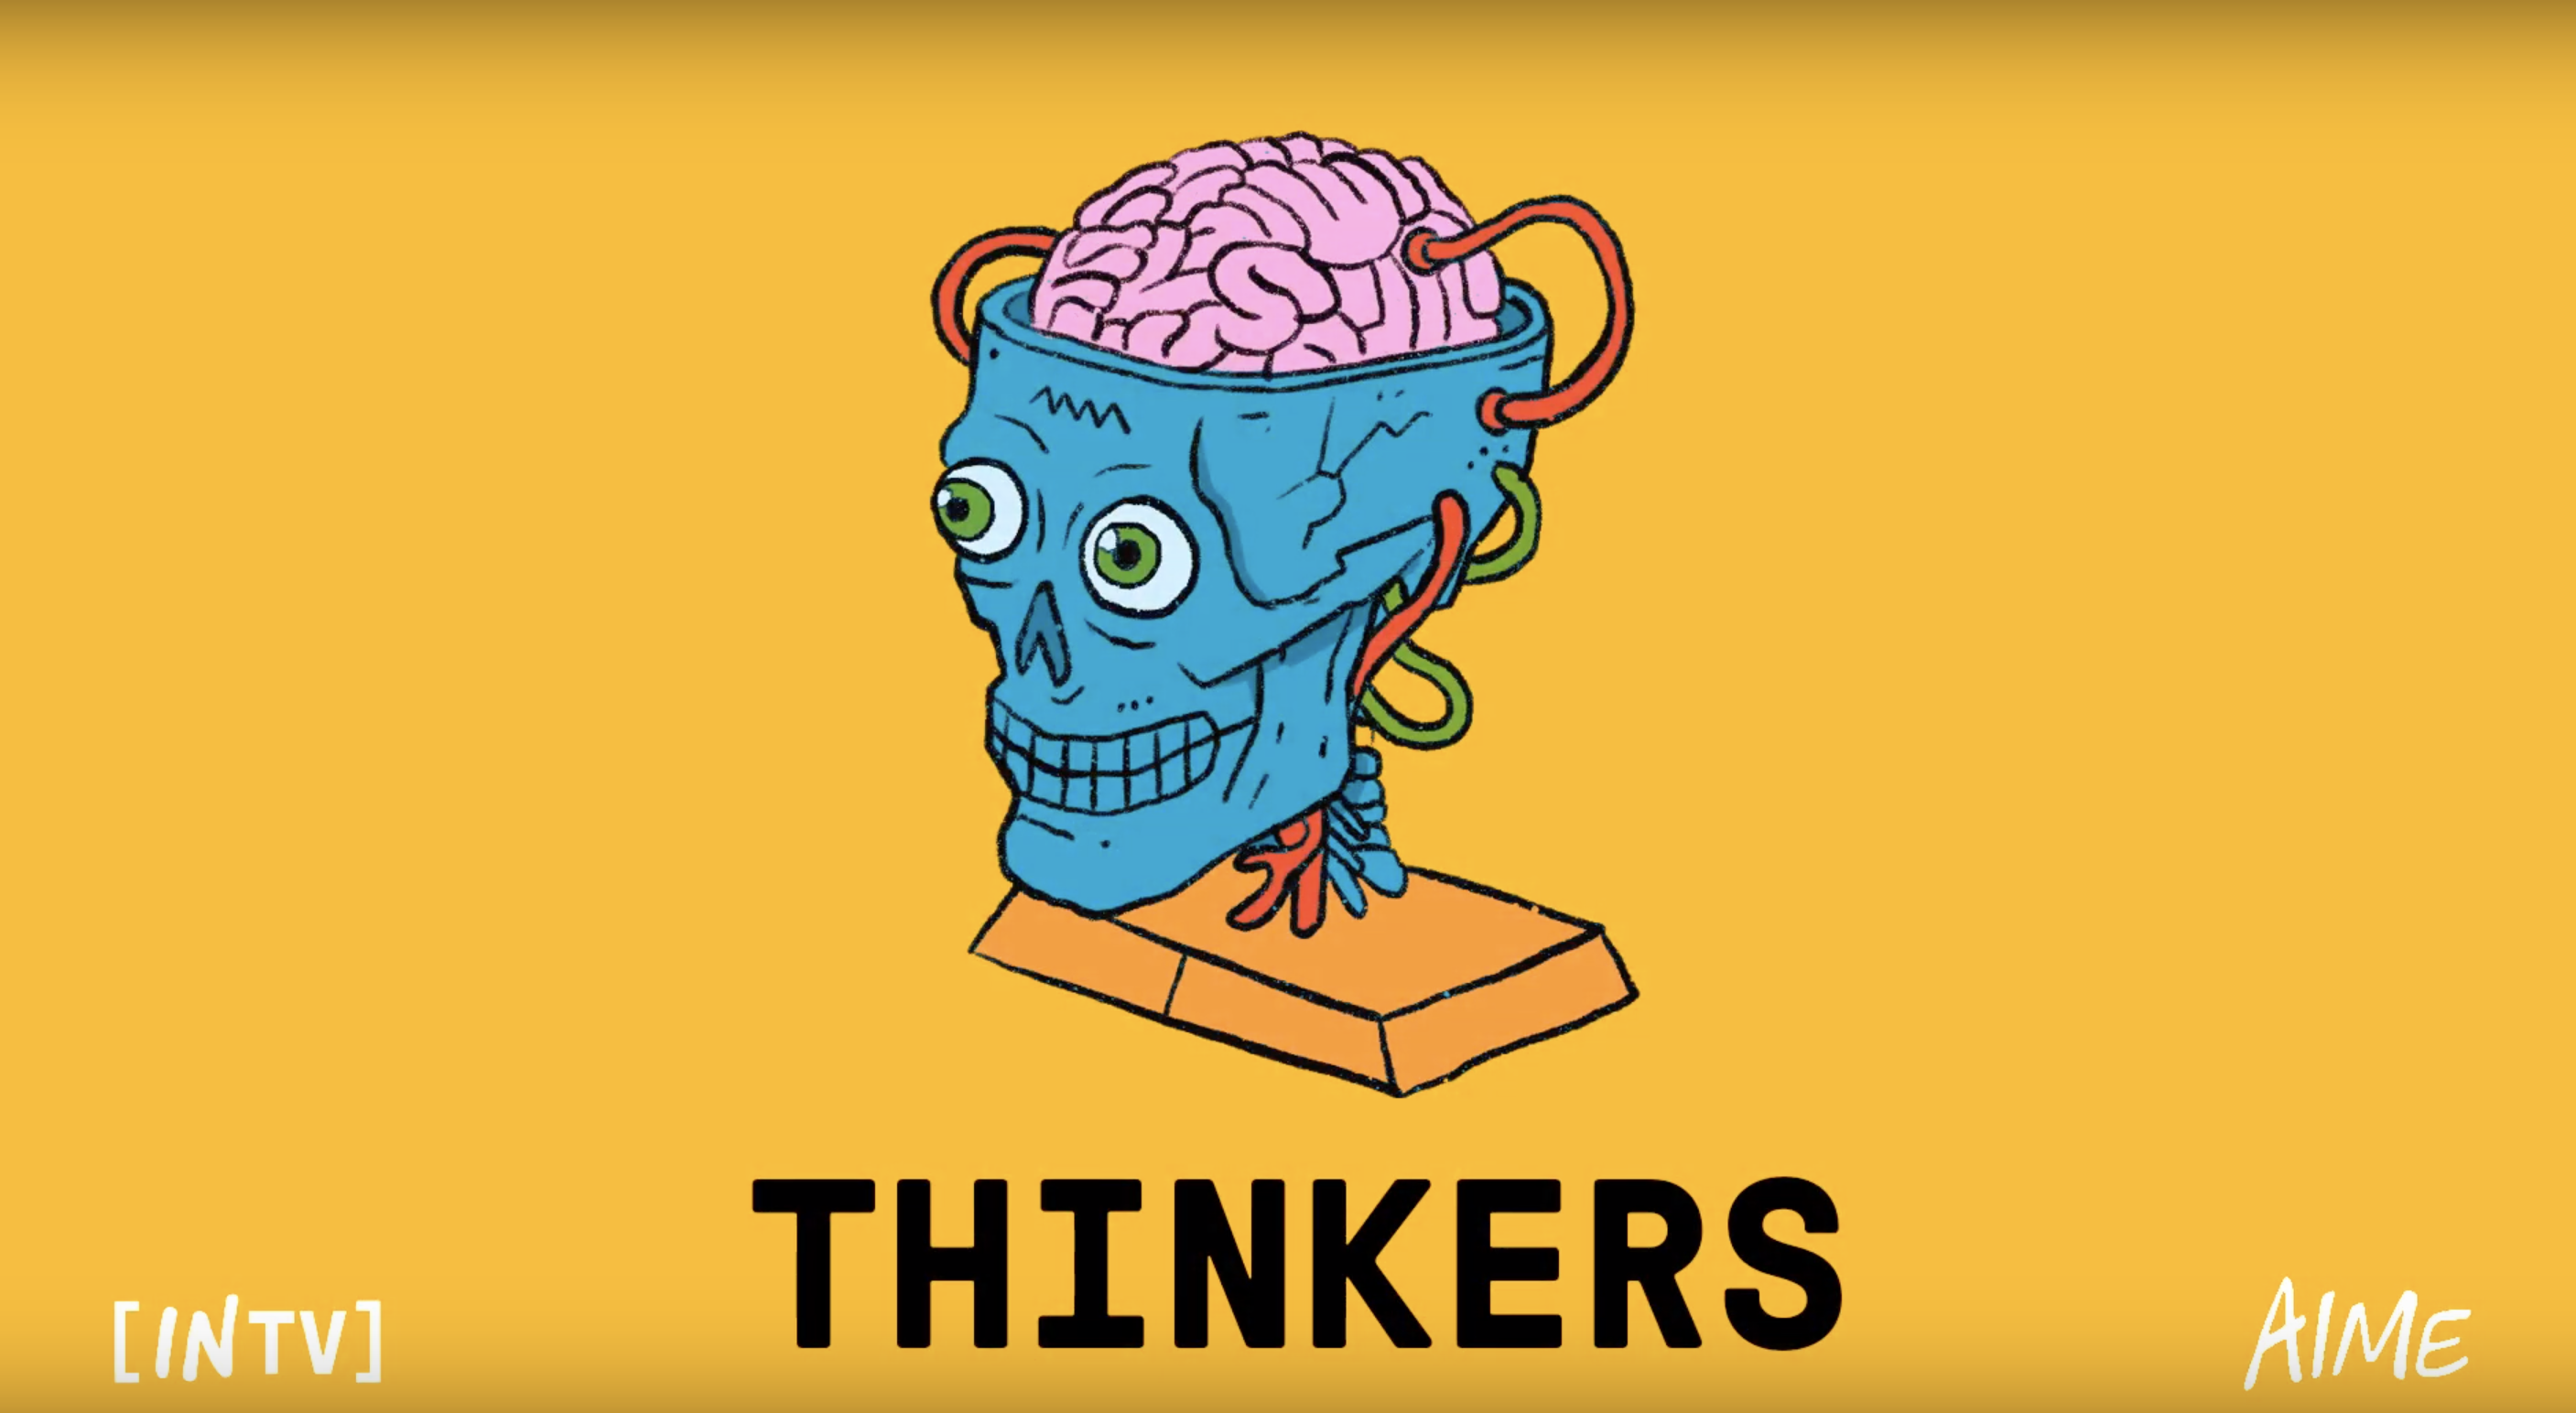 IN{TV} - EP 1 - THINKERS: Emphatic imagination, creating new realities, creative Mathematics and books of wisdom